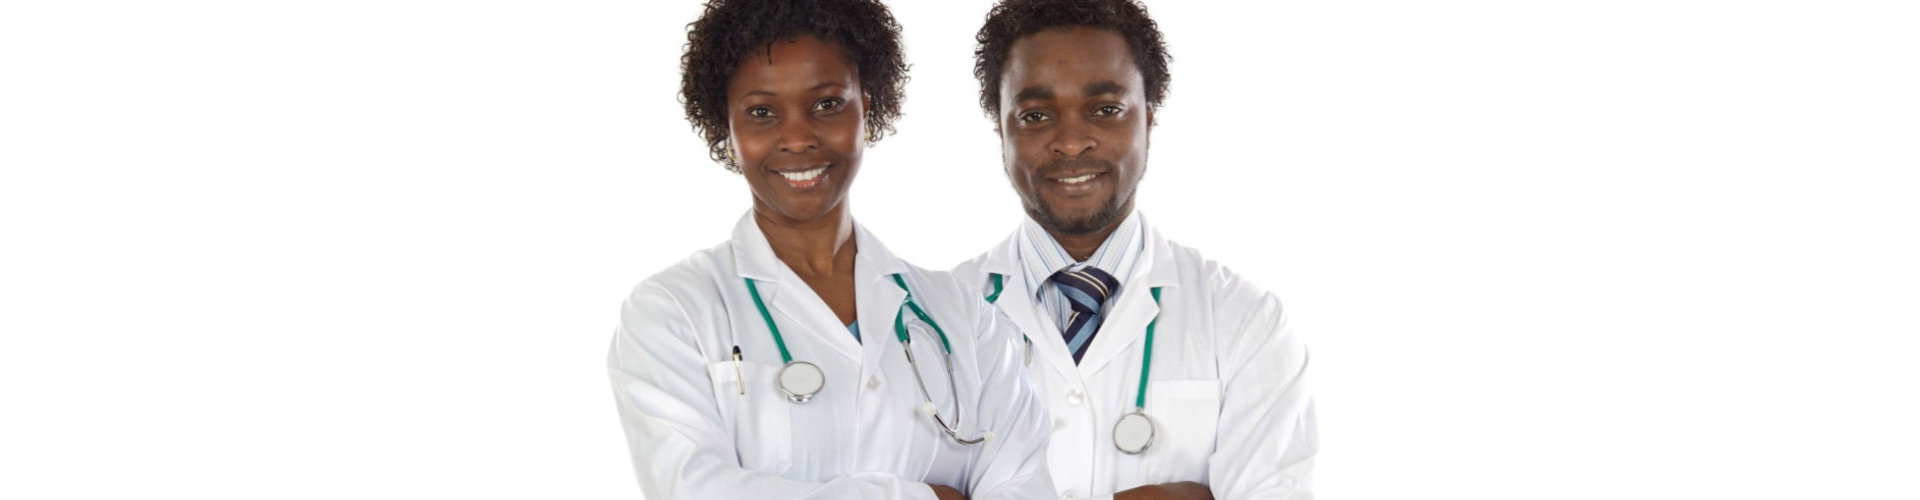 female and male doctor smiling